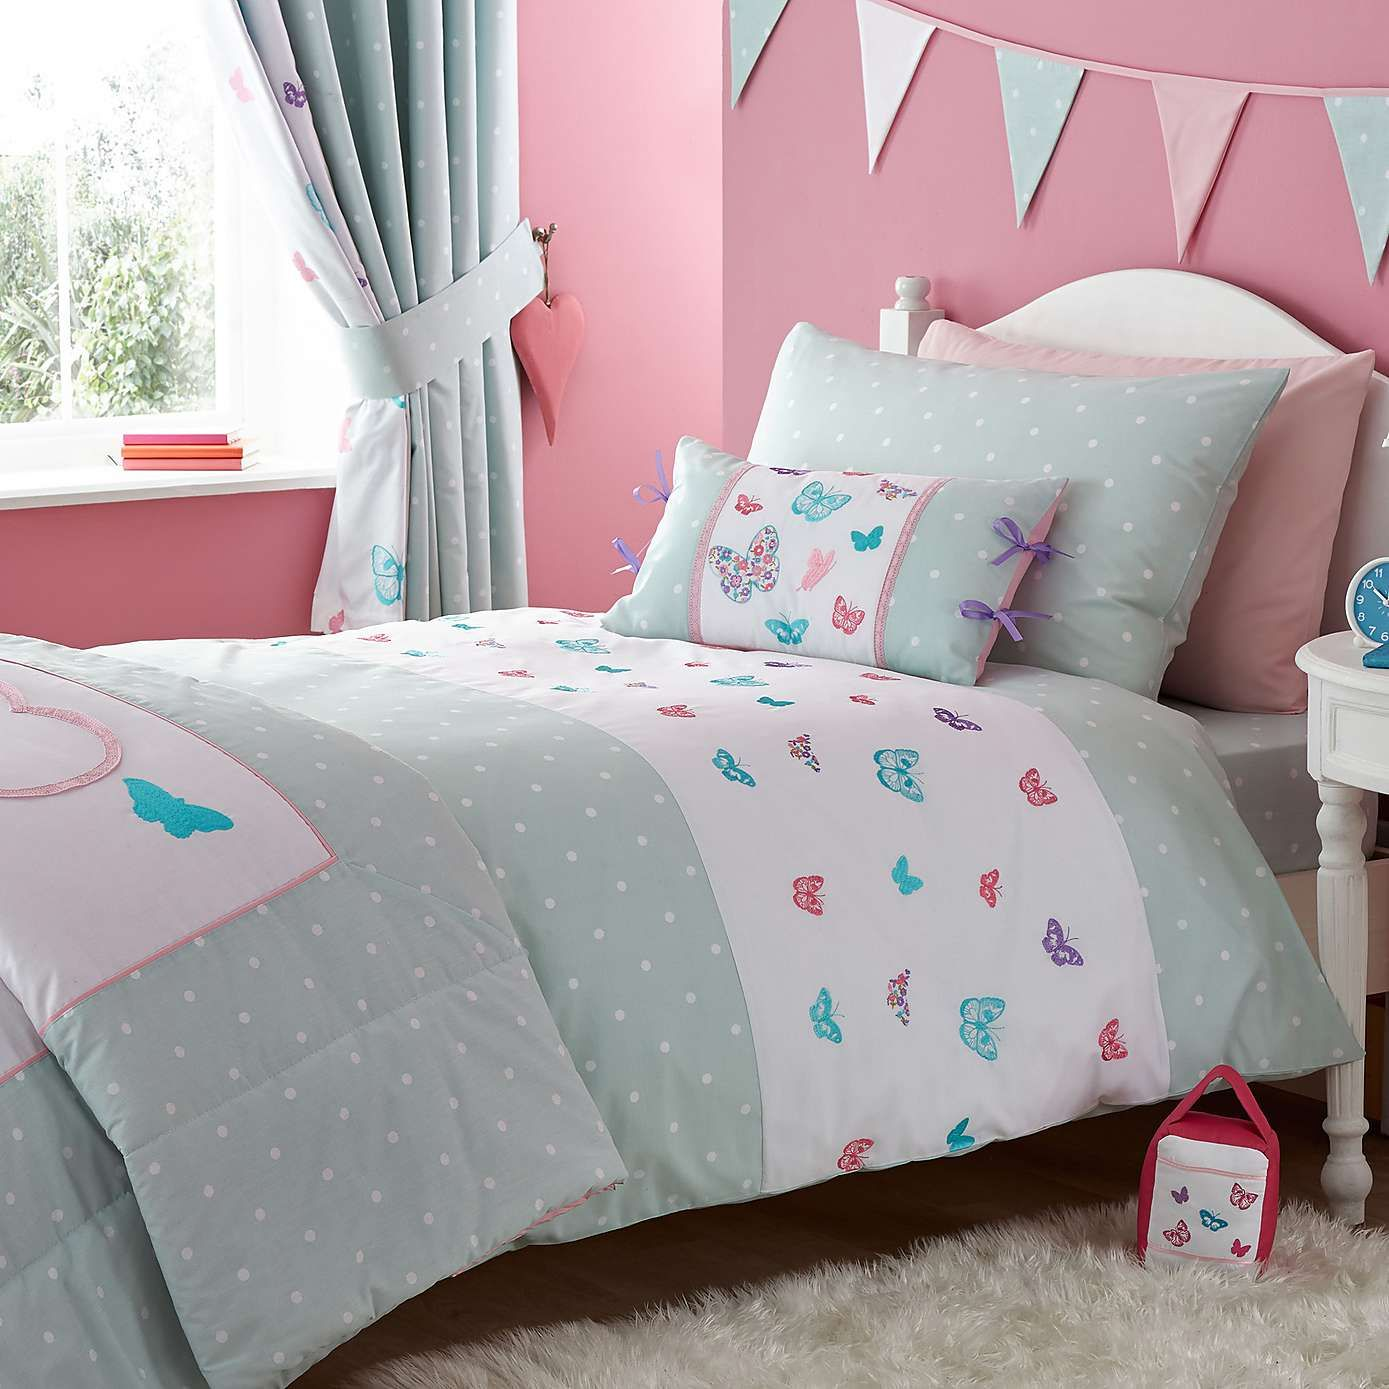 Kids Love to Shop Bed Linen Collection | Dunelm